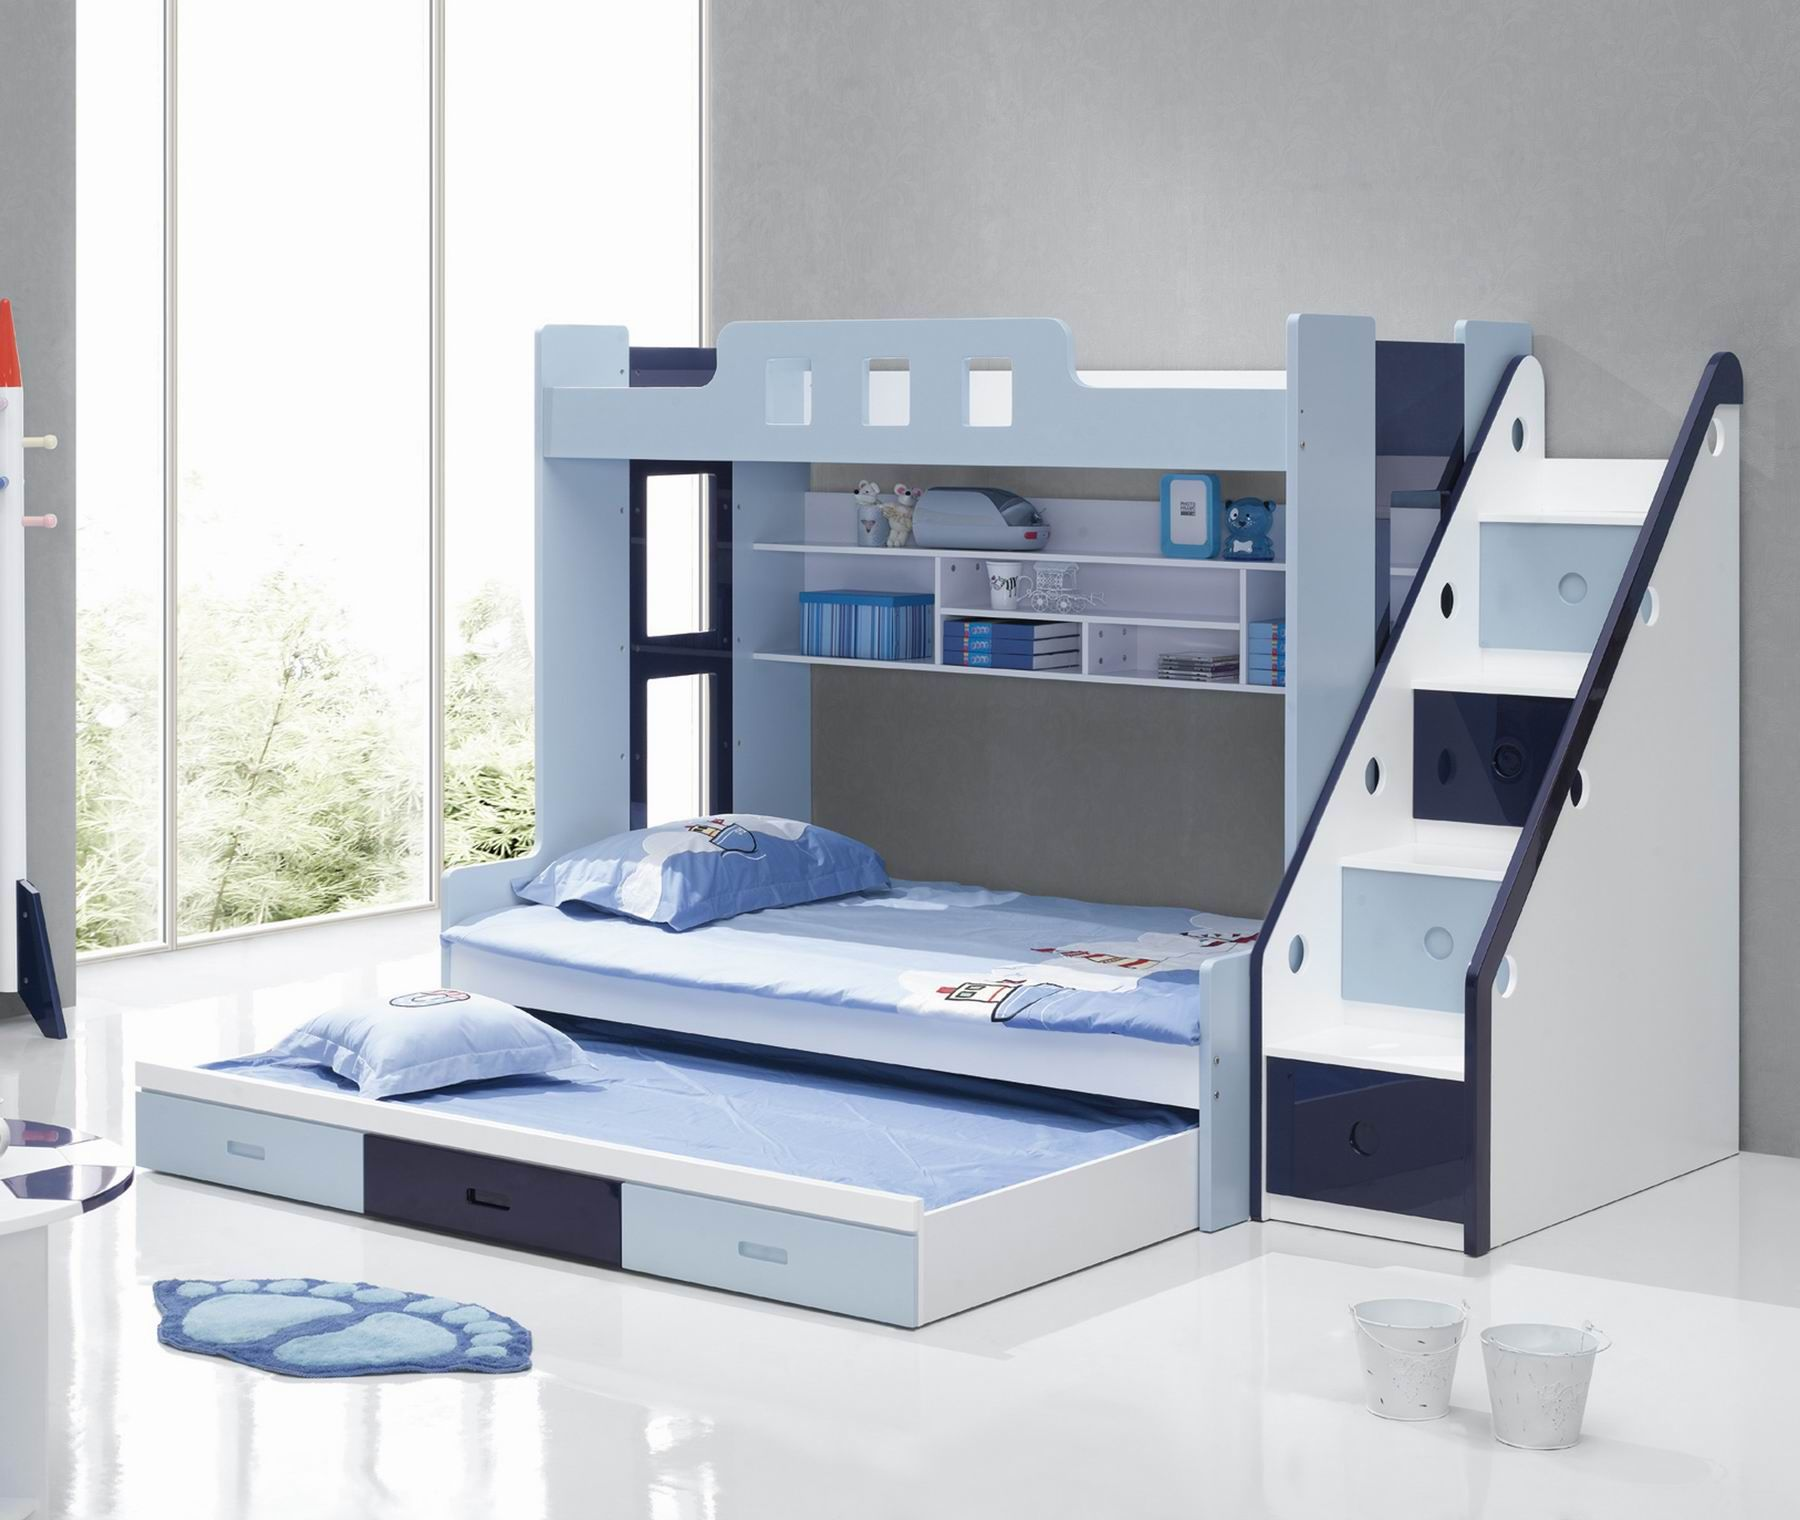 Modern bunk beds with desk - Kid Bedroom Modern Design Bunk Beds For Kids Bunk Bed